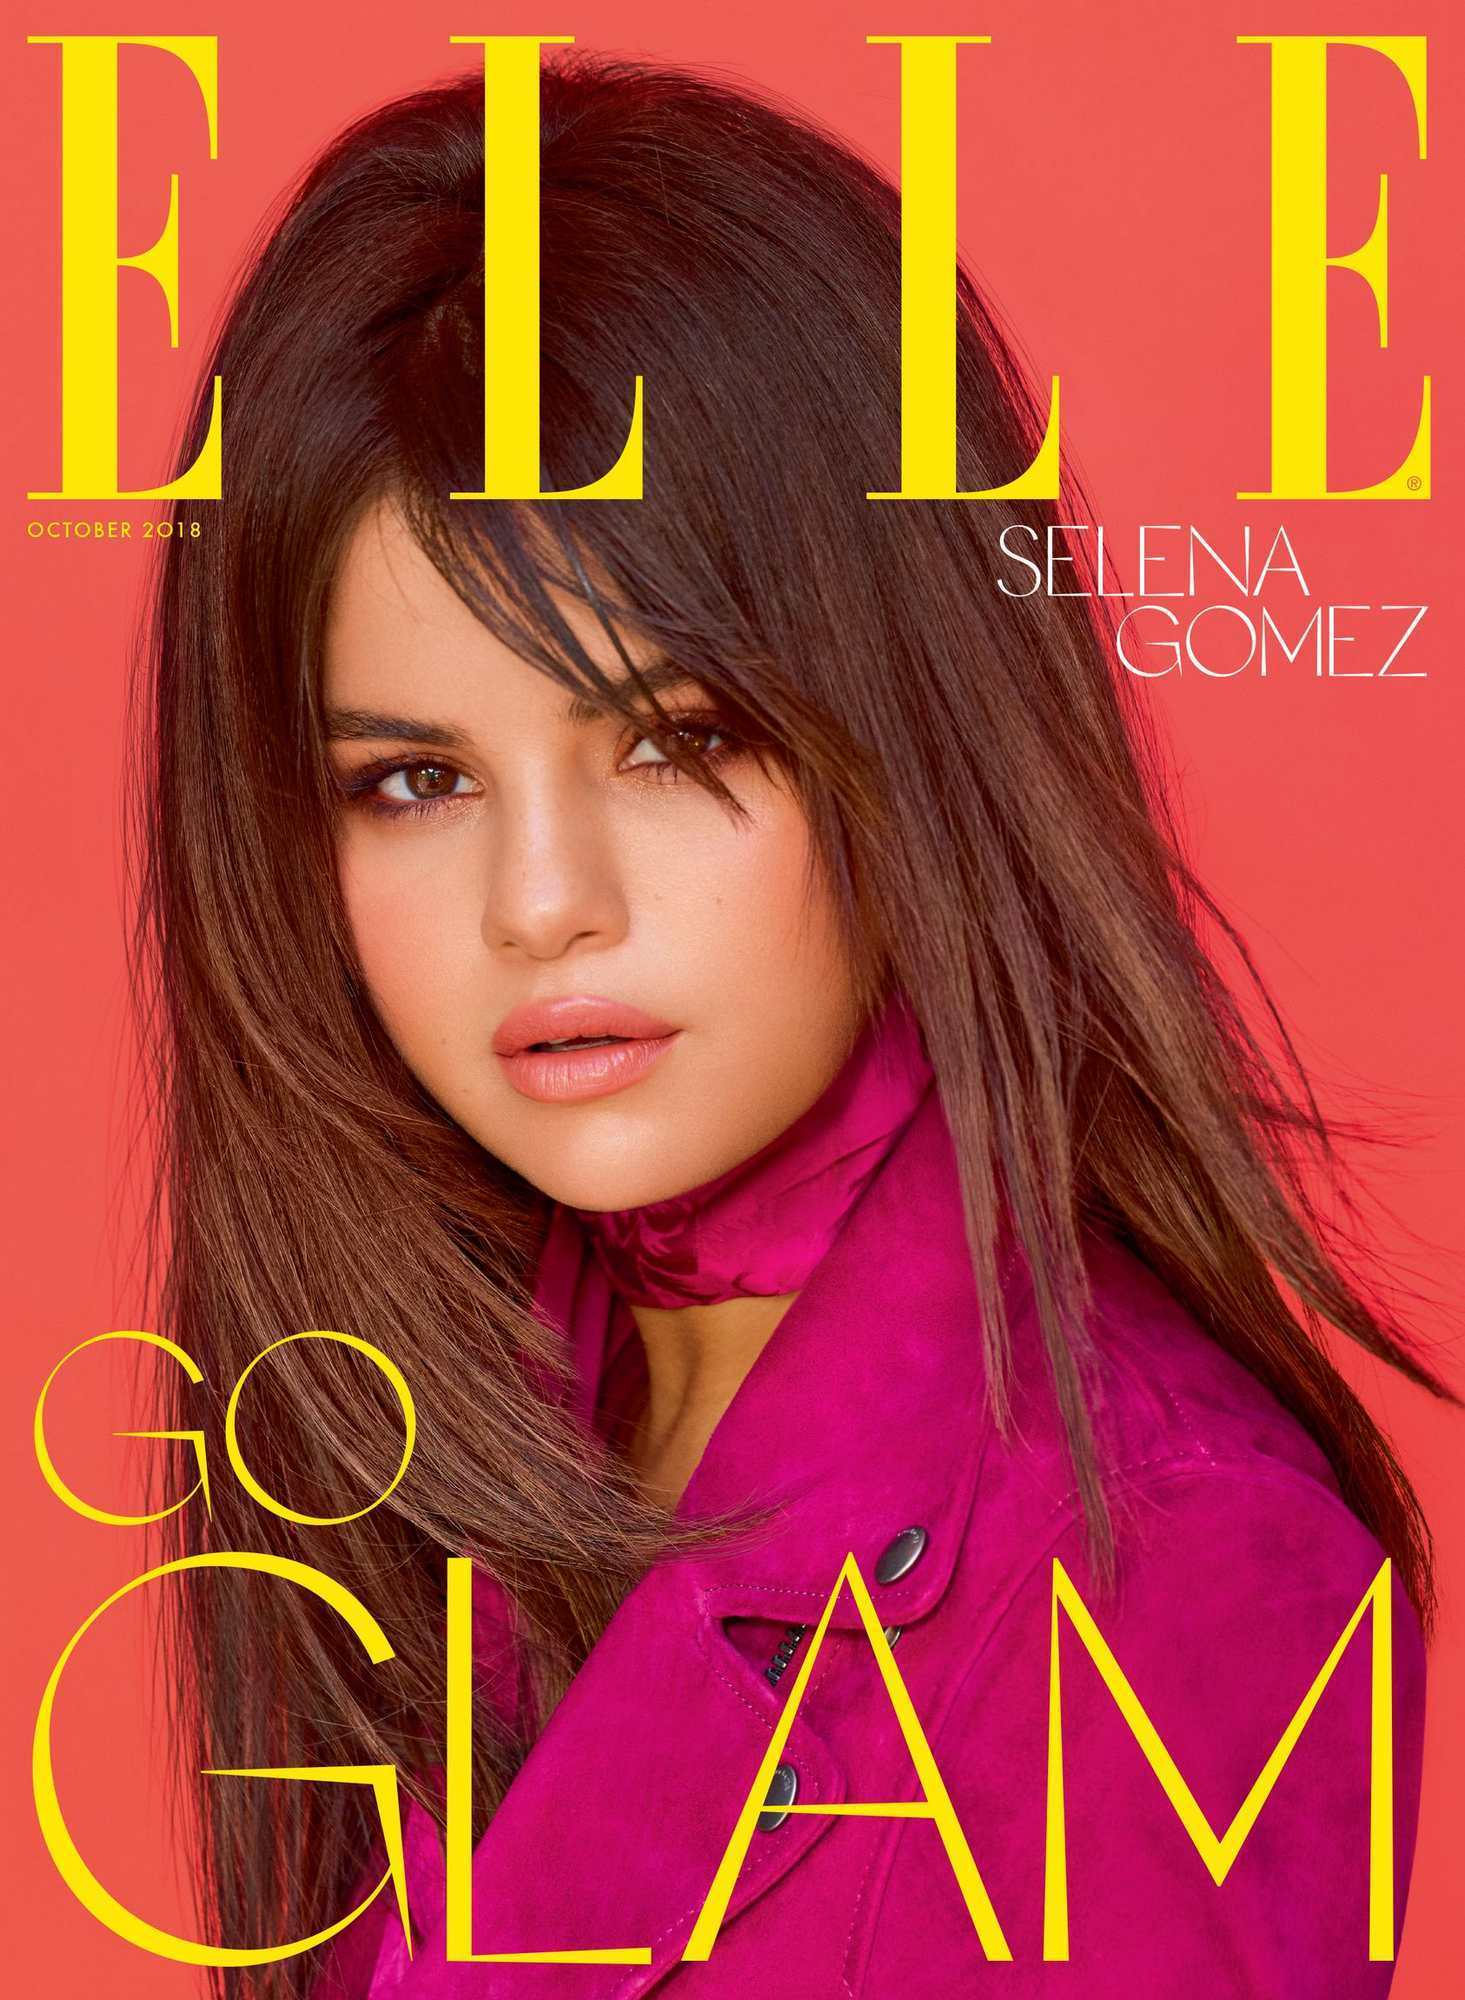 Selena-Gomez-ELLE-UK-By-Mariano-Vivanco-October-2018-IssueSelena-Gomez-ELLE-UK-By-Mariano-Viva (5).jpg